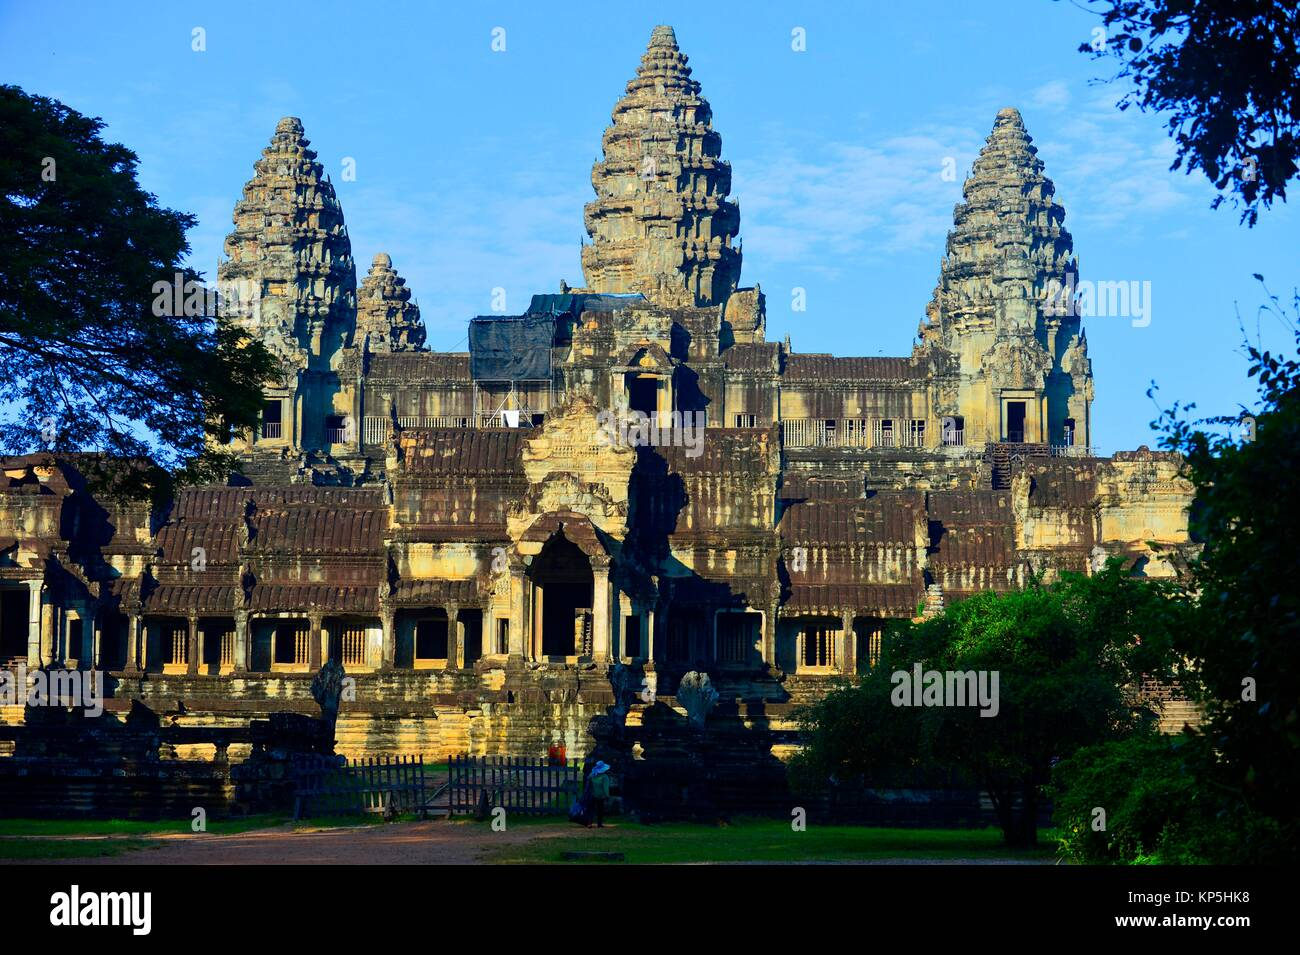 Angkor Wat temple,Siem Reap,Cambodia,Indochina,Southeast Asia,Asia. - Stock Image